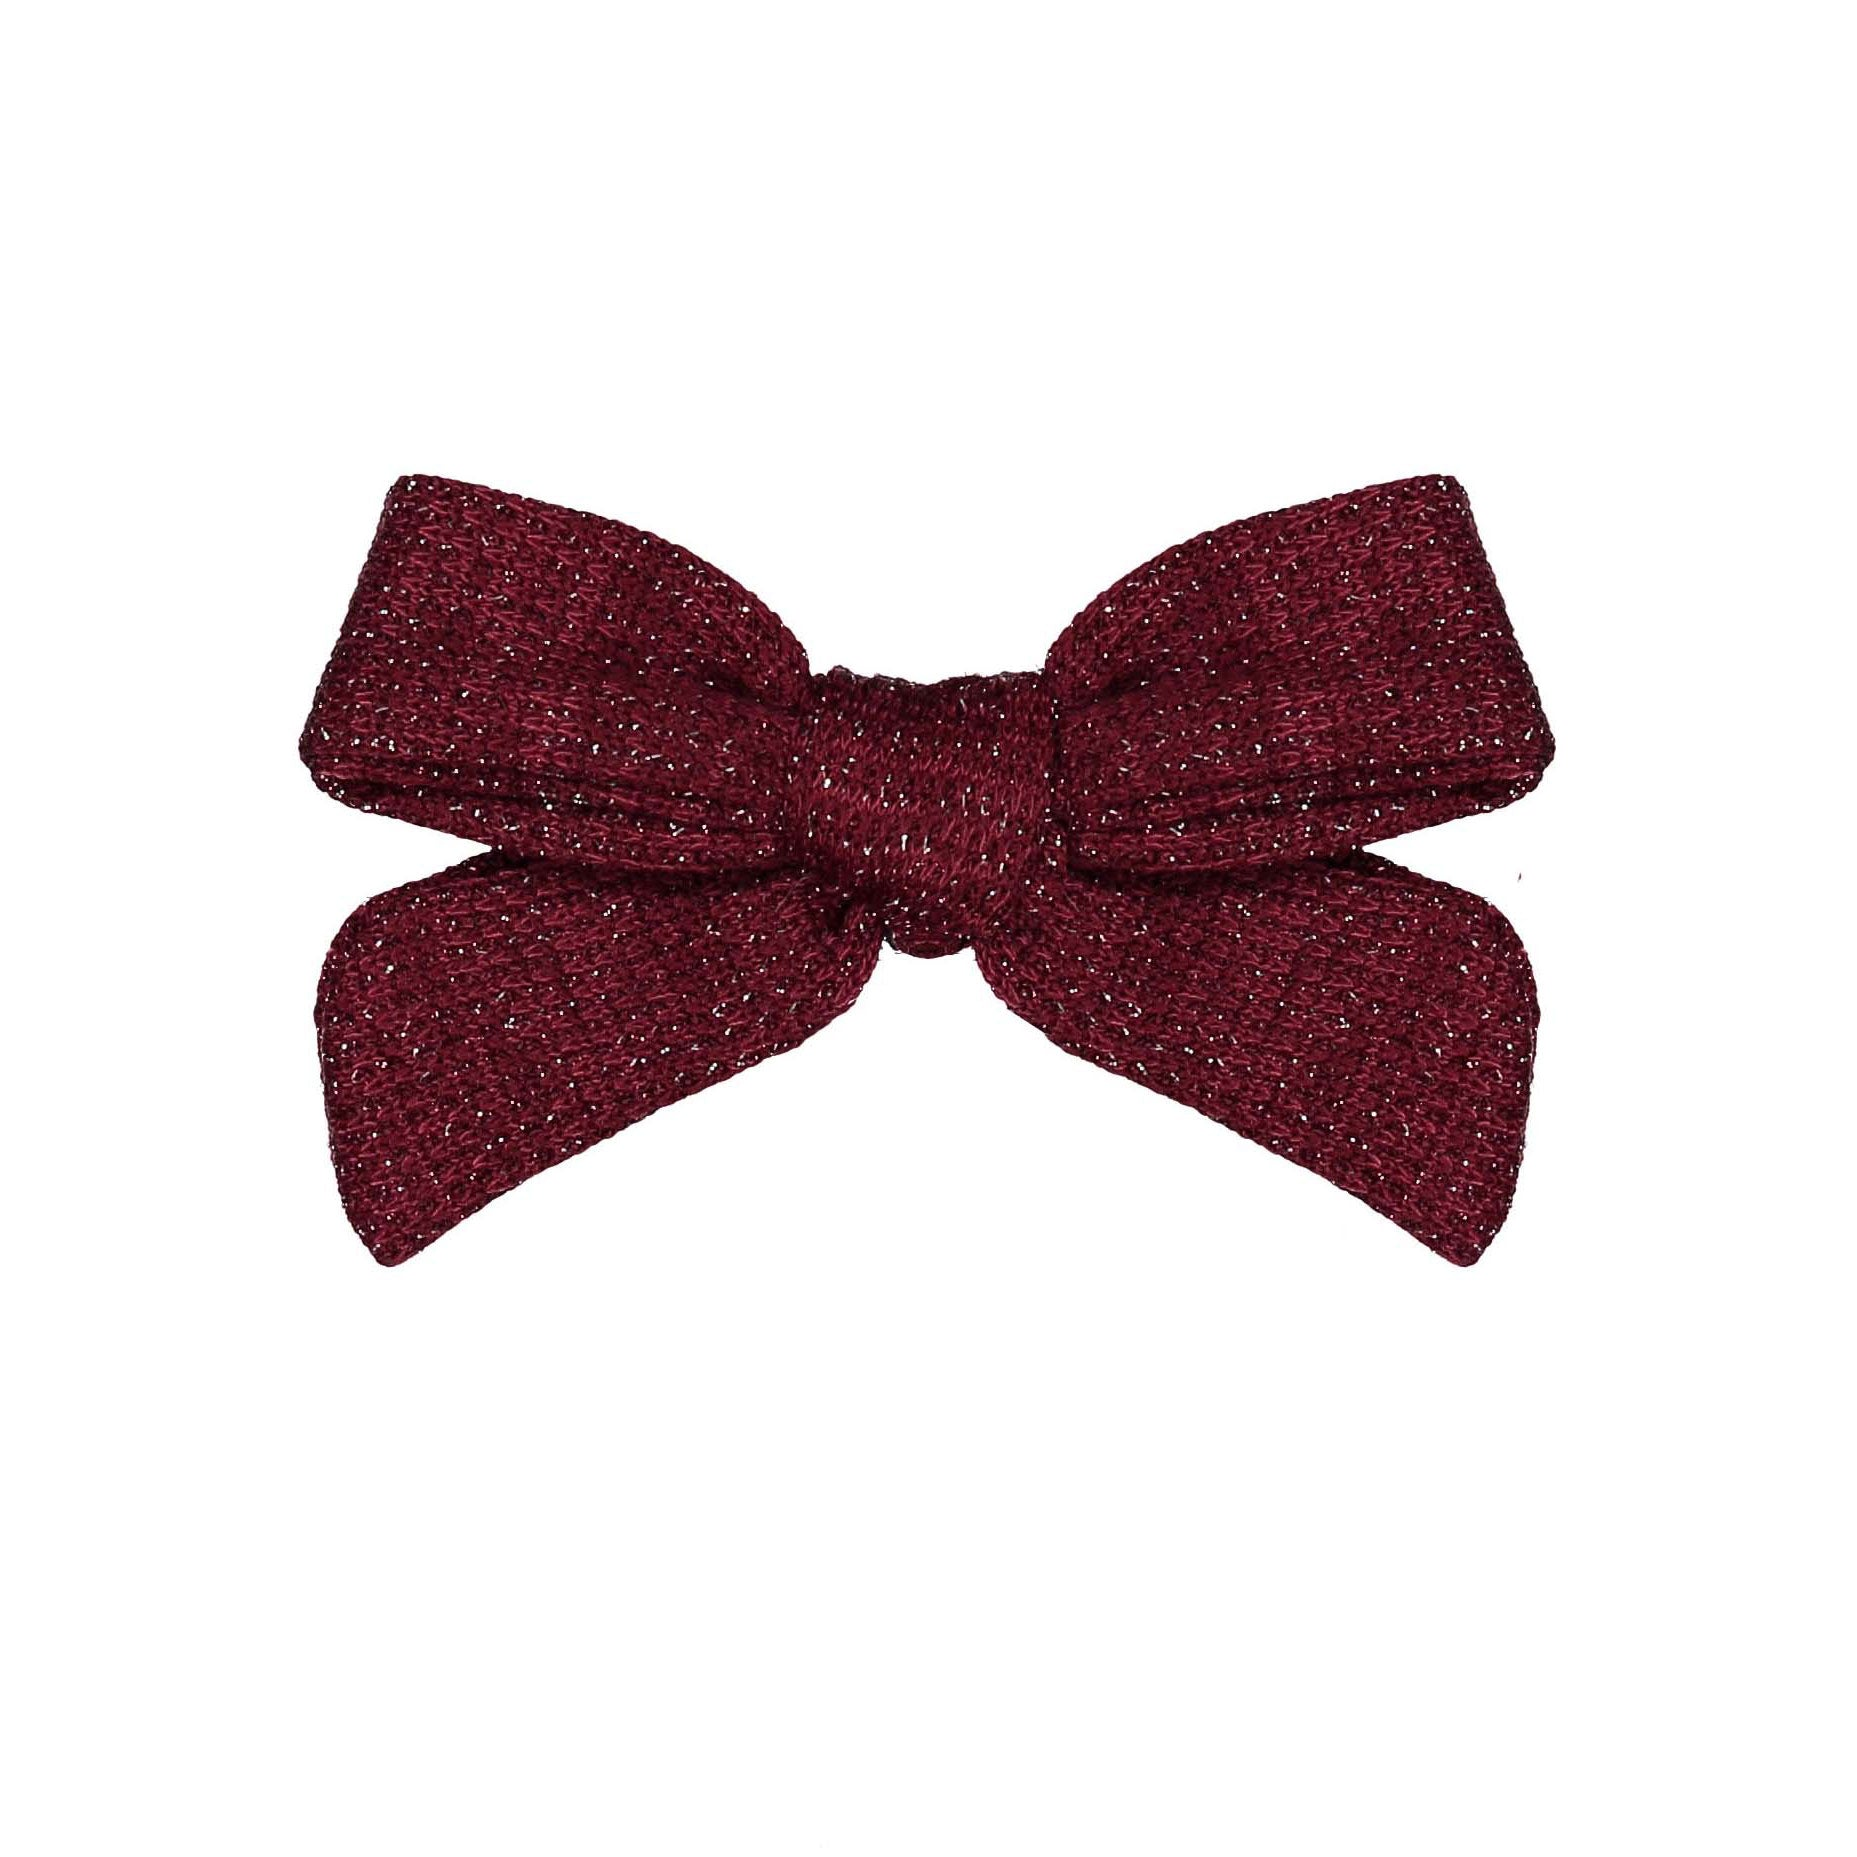 Knot Hairbands Burgundy Sweater Bow Clip